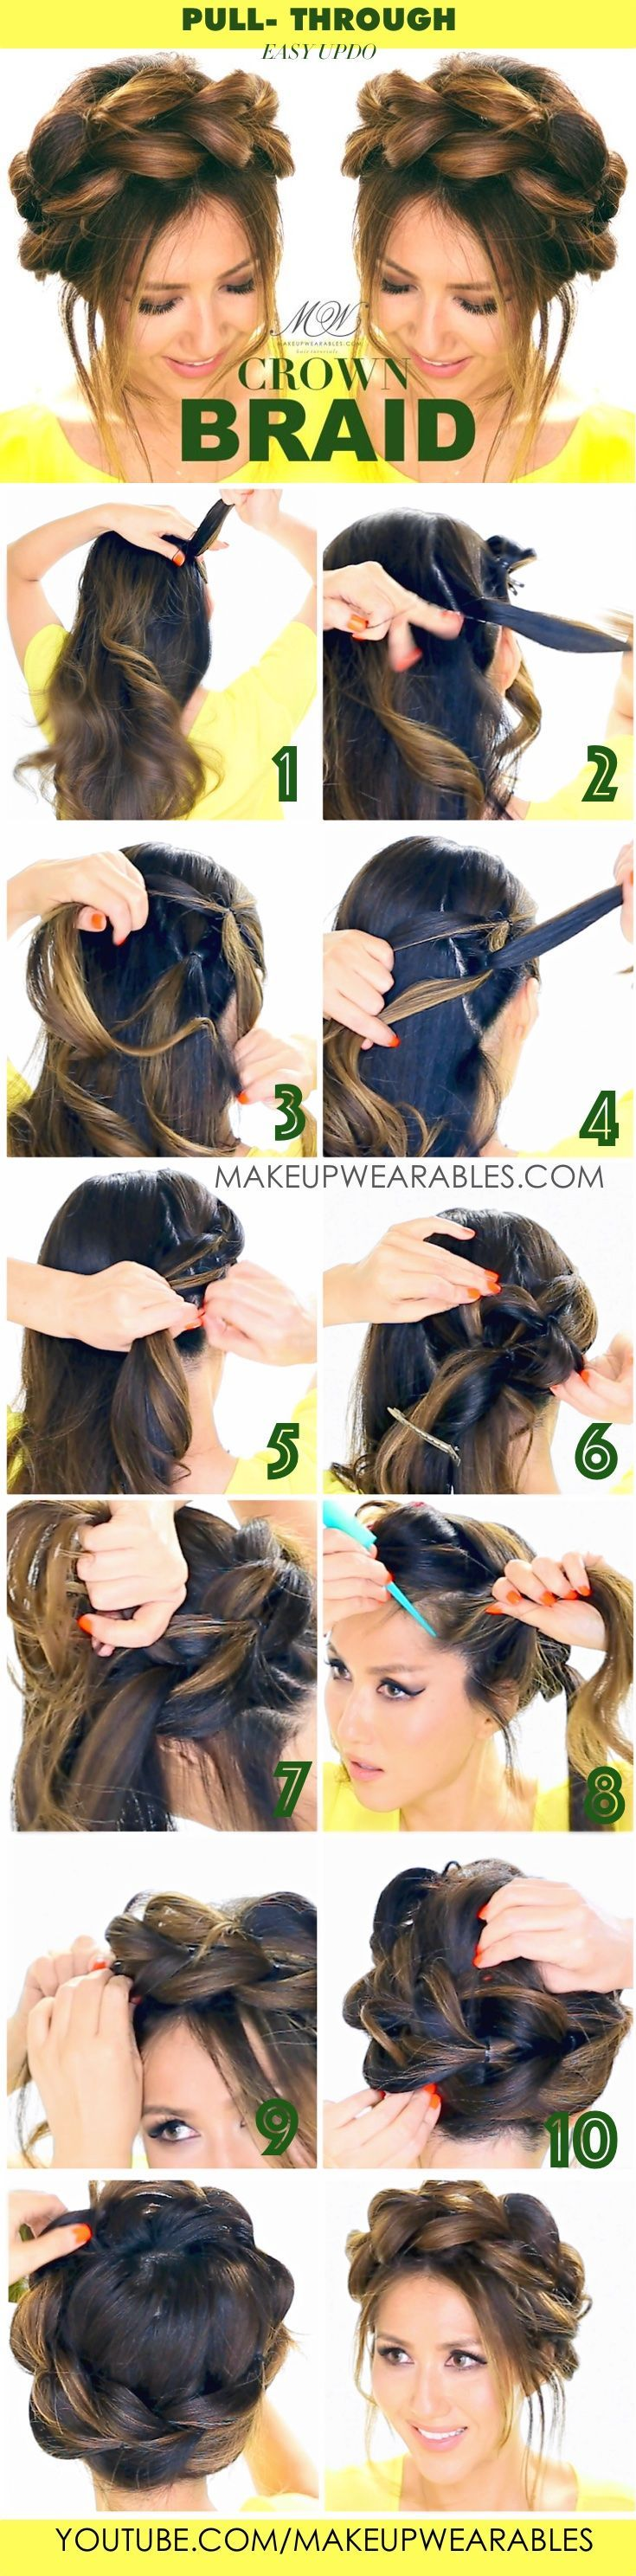 Quick and easy updo hairstyle pullthrough crown braid